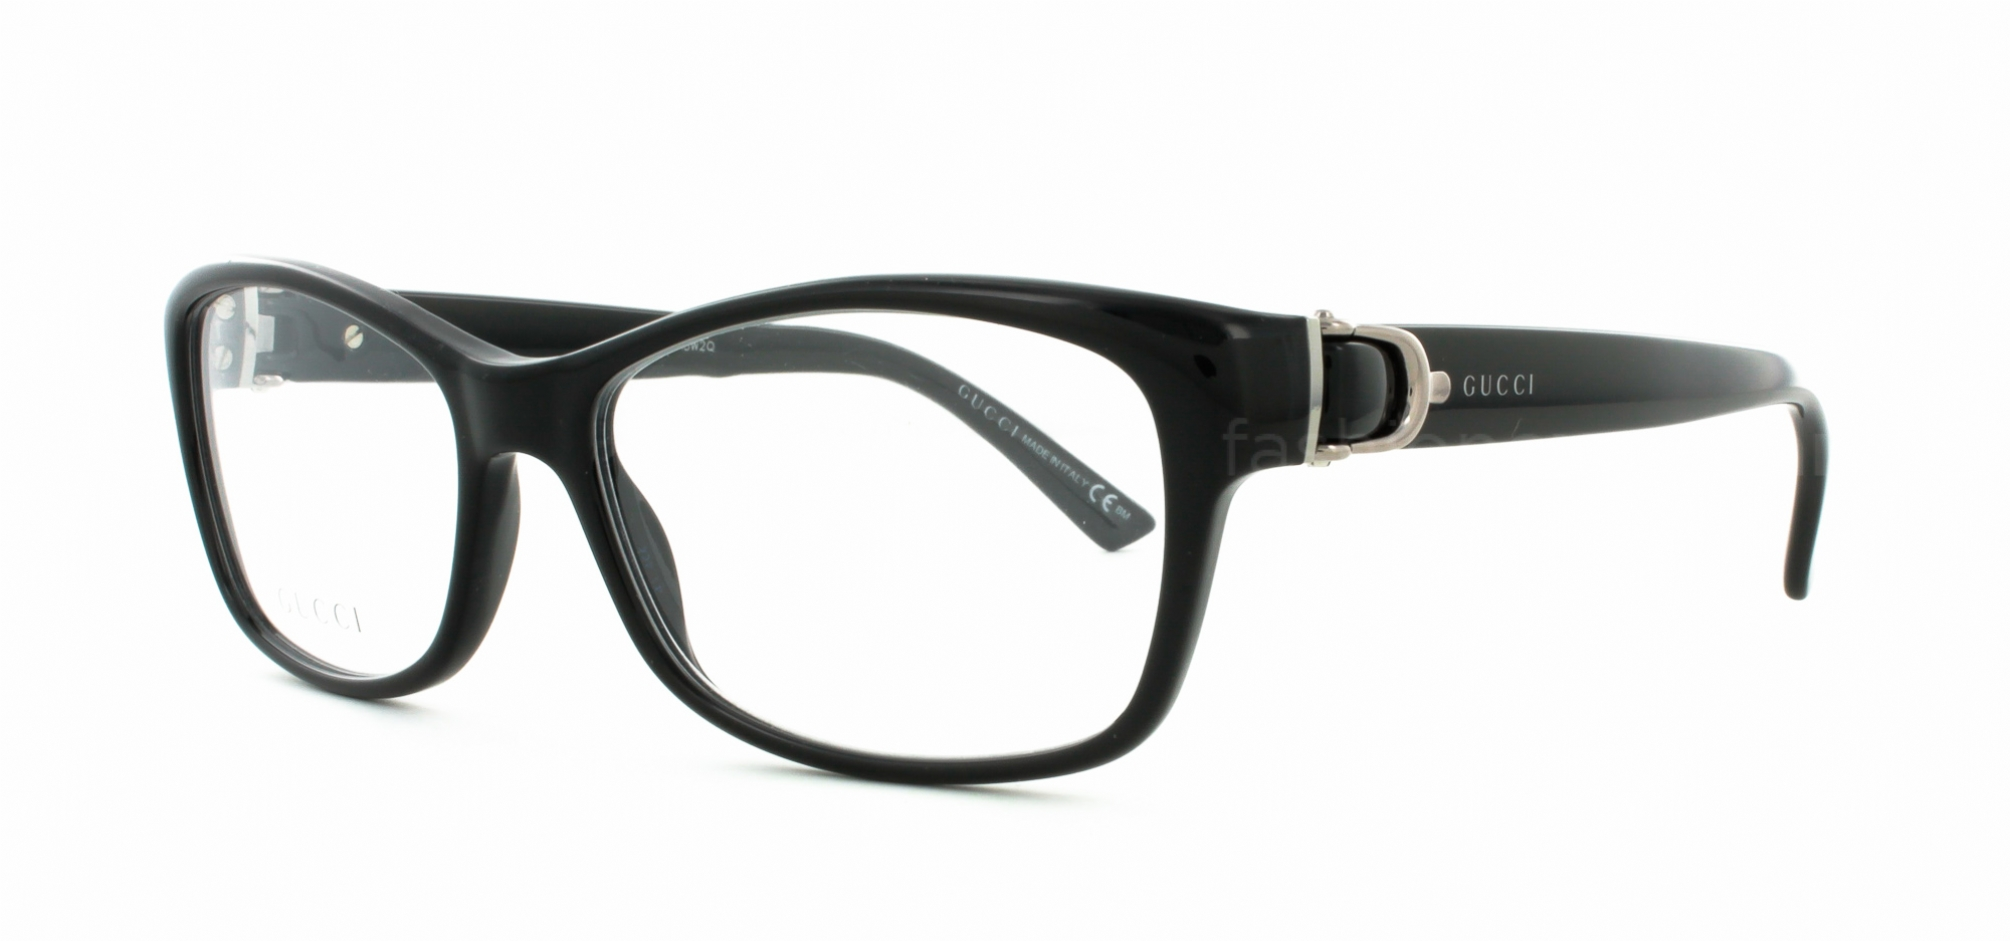 Buy Gucci Eyeglasses directly from OpticsFast.com